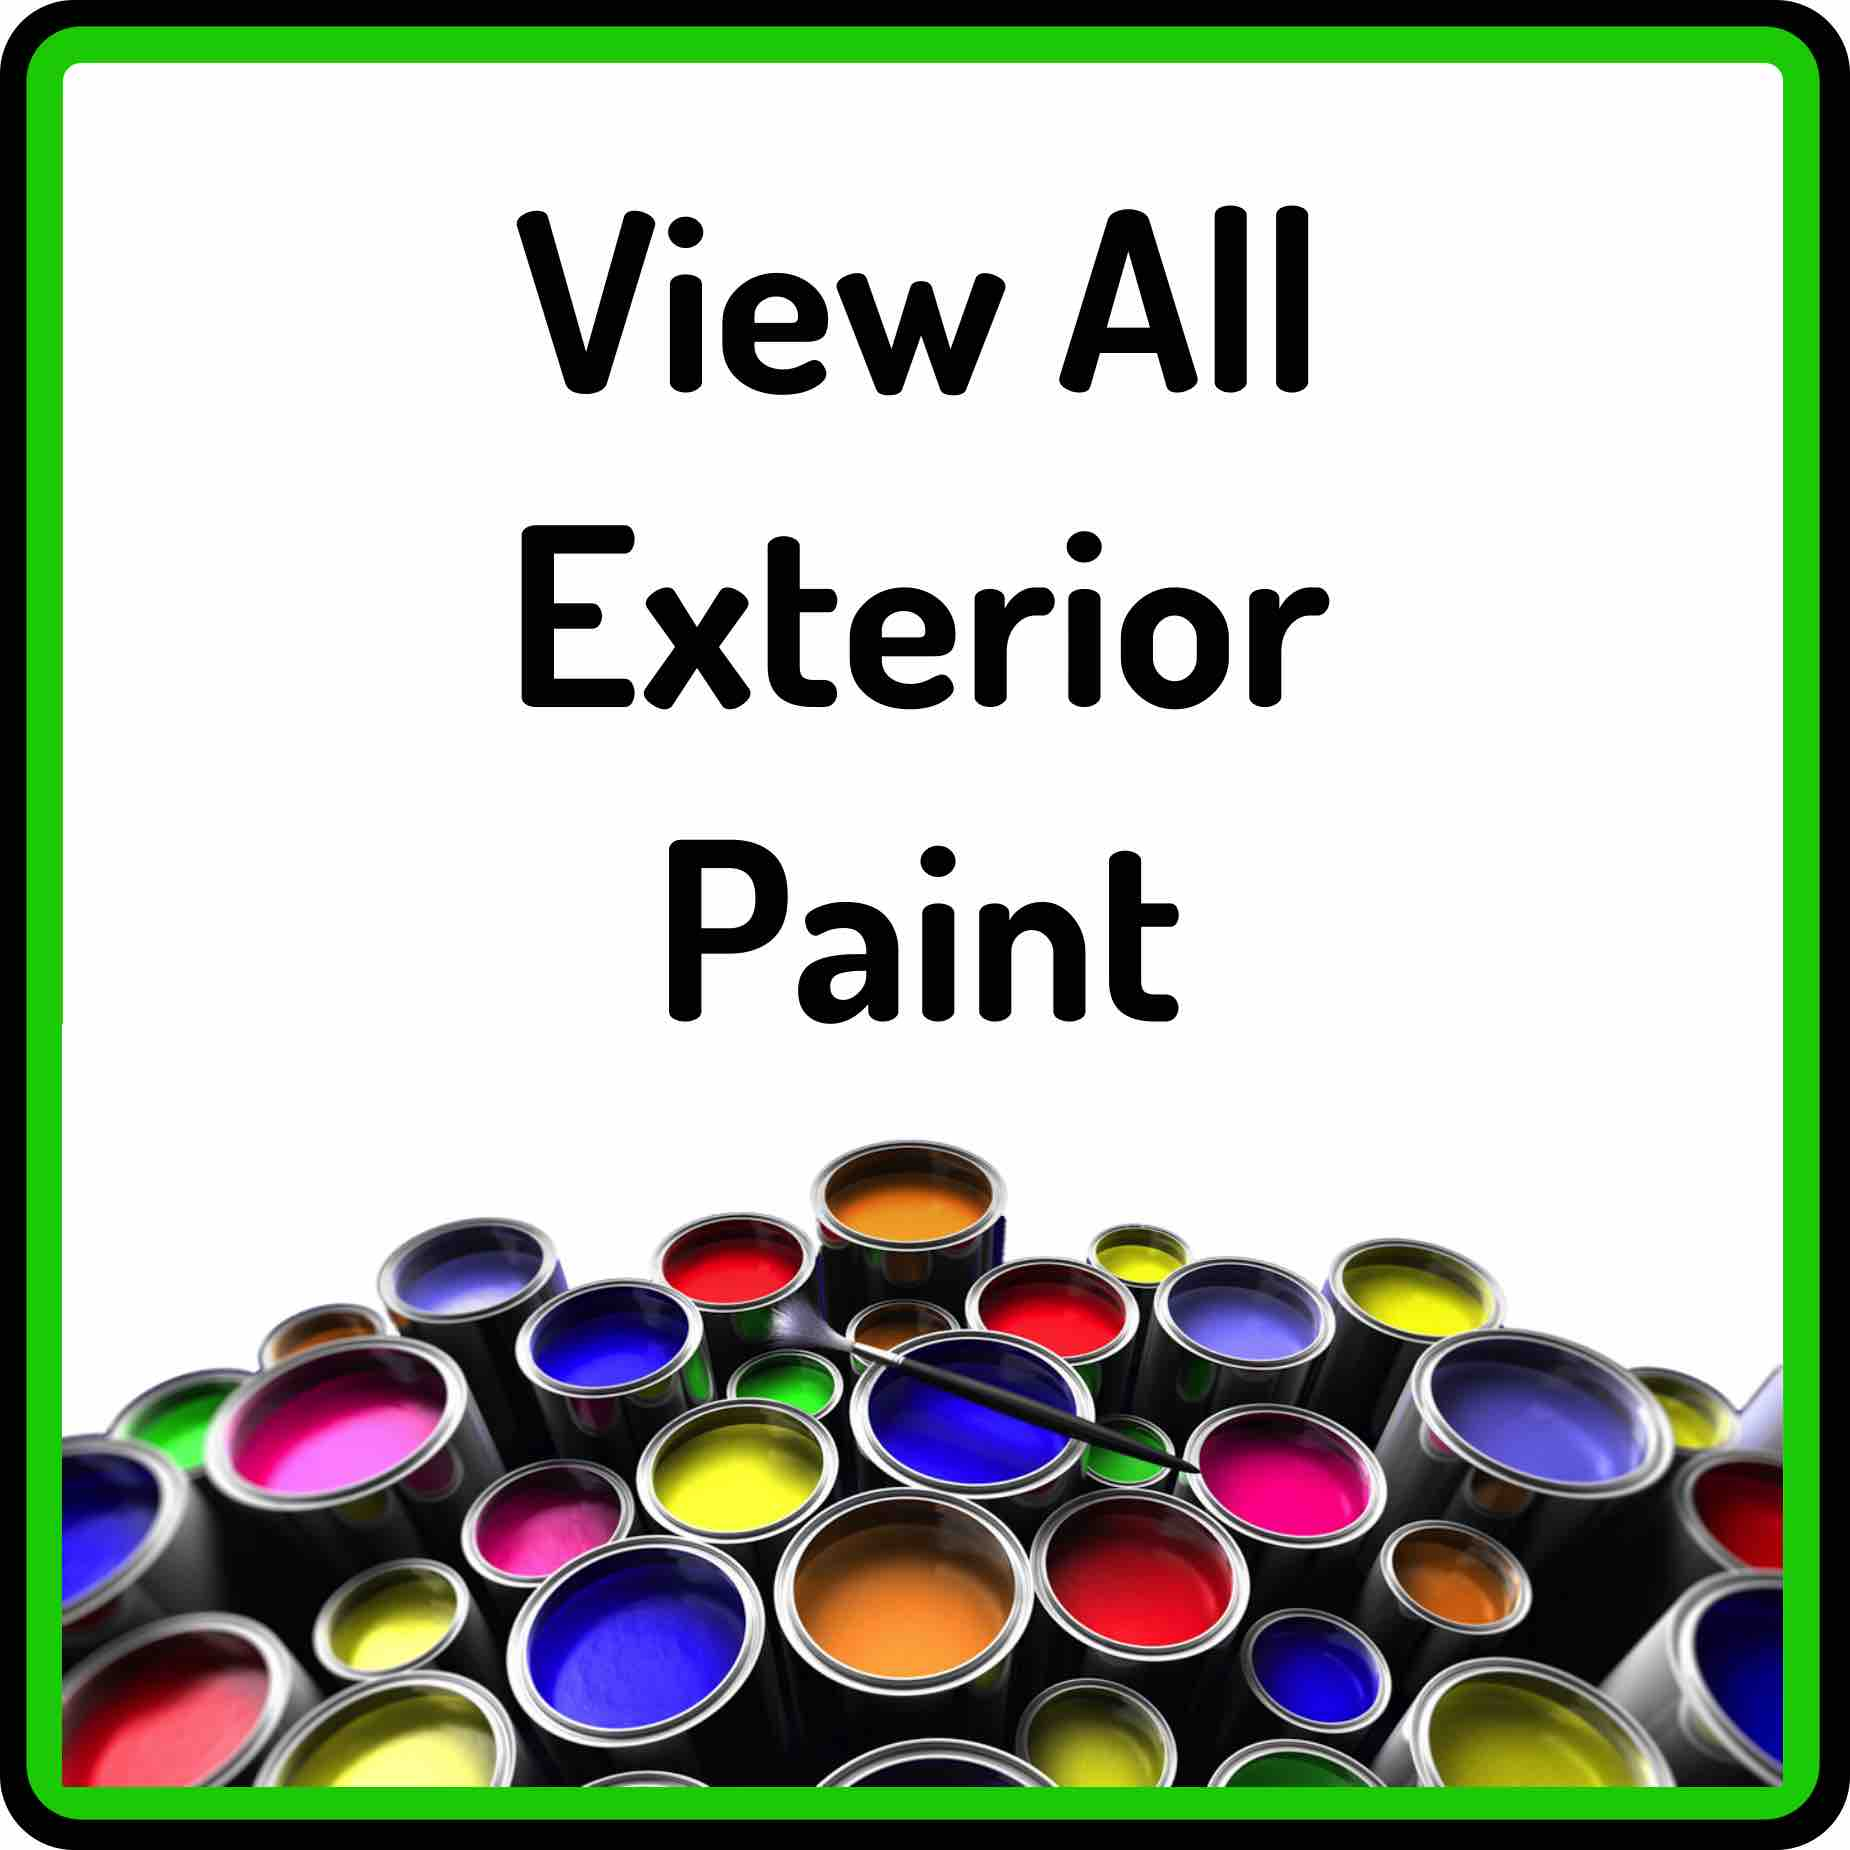 View All Available Exterior Paint Button